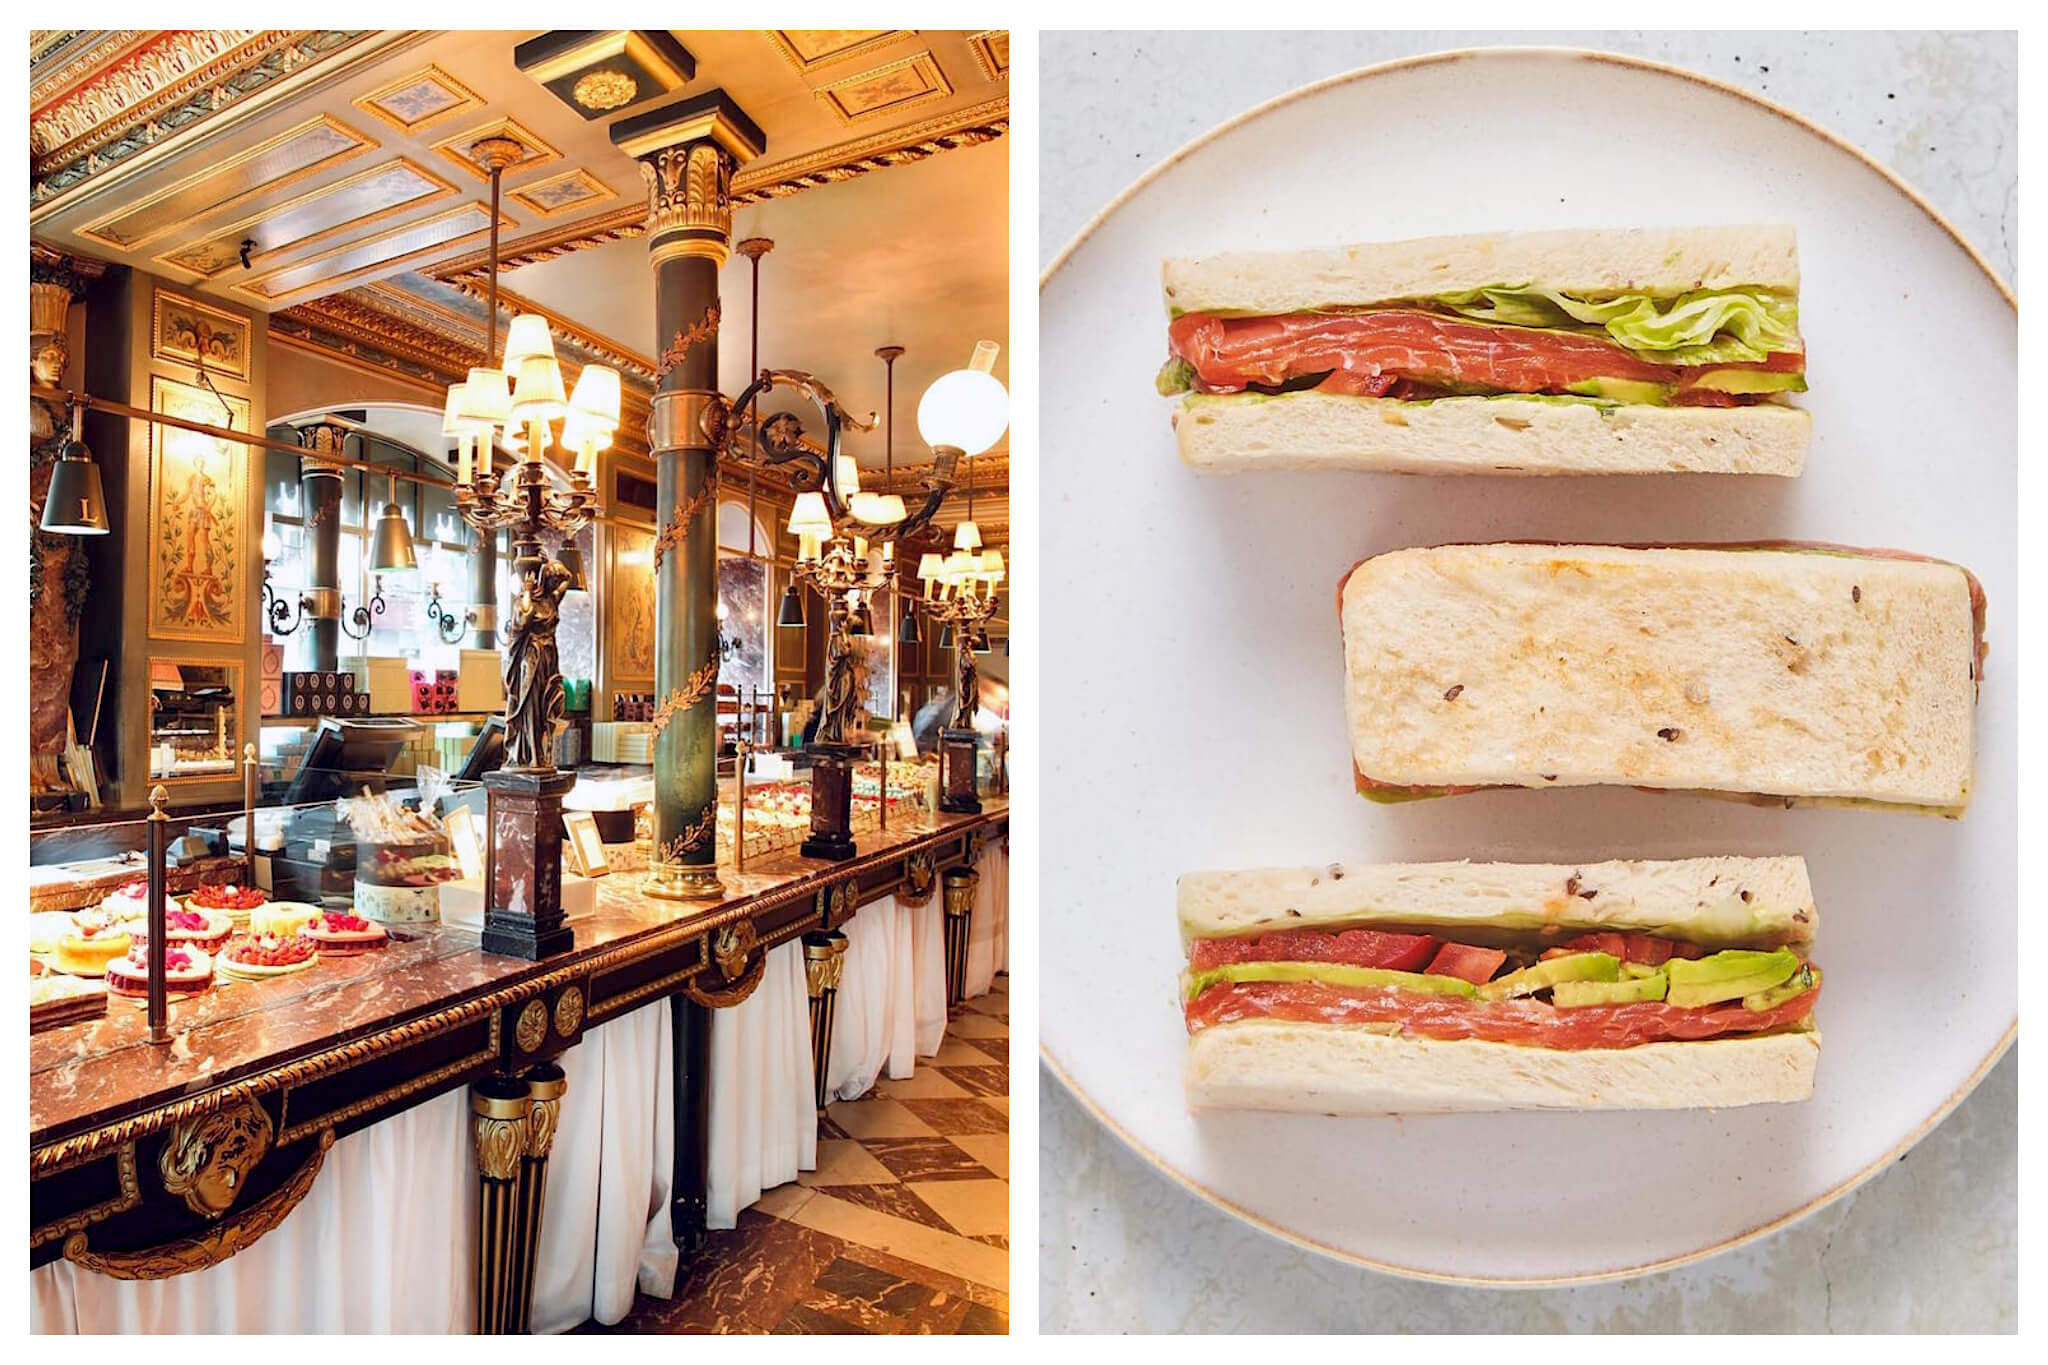 Left: Inside the Ladurée restaurant and store on the Champs Elysées. The inside is decorated with beautiful marble and bright lights, Right: Salmon and avocado sandwiches are lined up on a flat white plate at Ladurée.